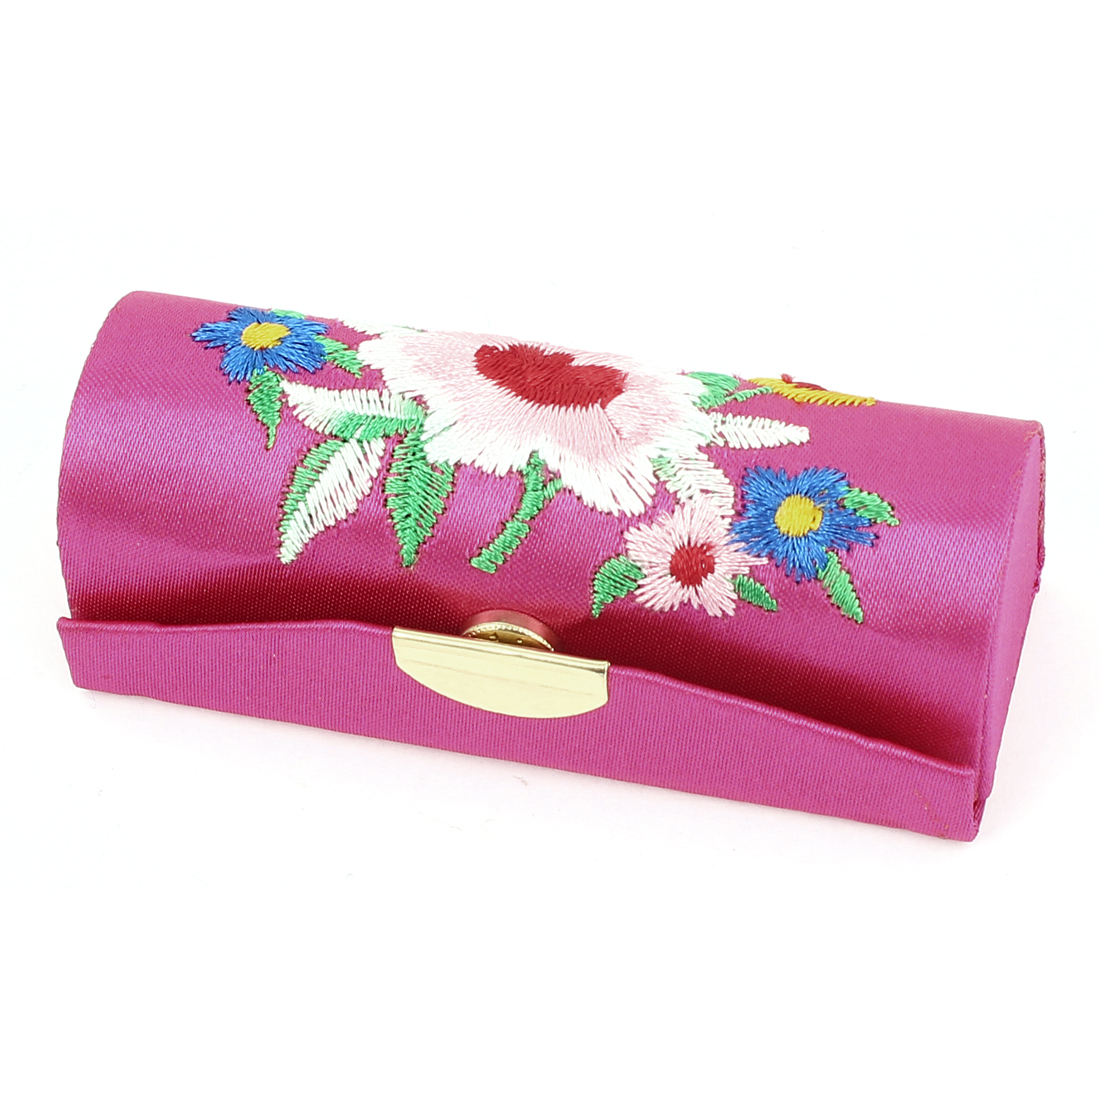 Women Floral Embroidery Lipstick Lip Balm Chap Stick Case Jewelry Holder Magenta